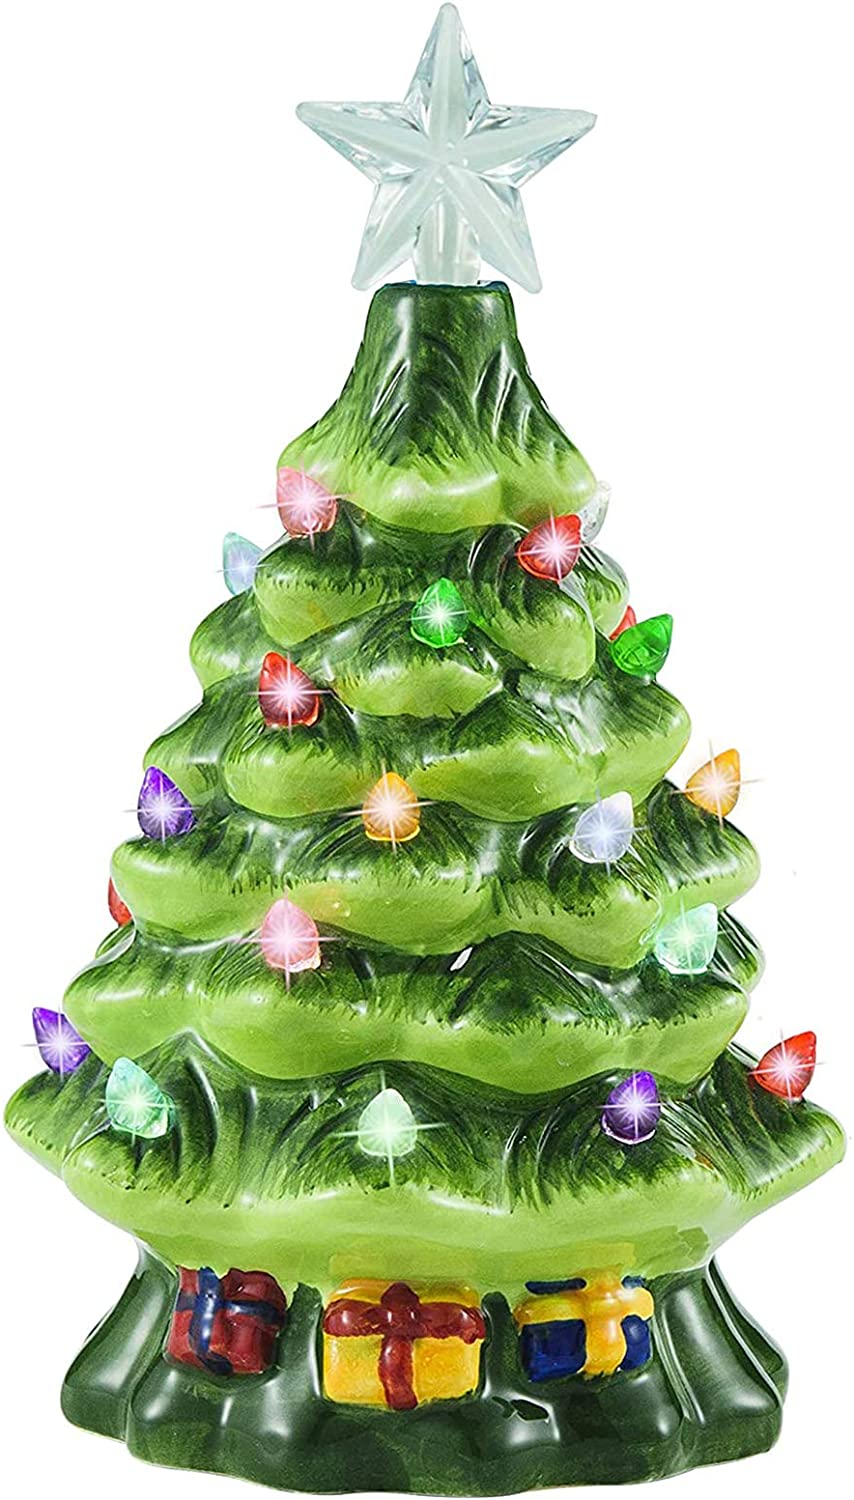 """Joiedomi 7"""" Ceramic Christmas Tree with Gift Box, Mini Prelit Tabletop Christmas Tree with Extra Blue Star Topper & Bulbs for Best Desk Decoration"""